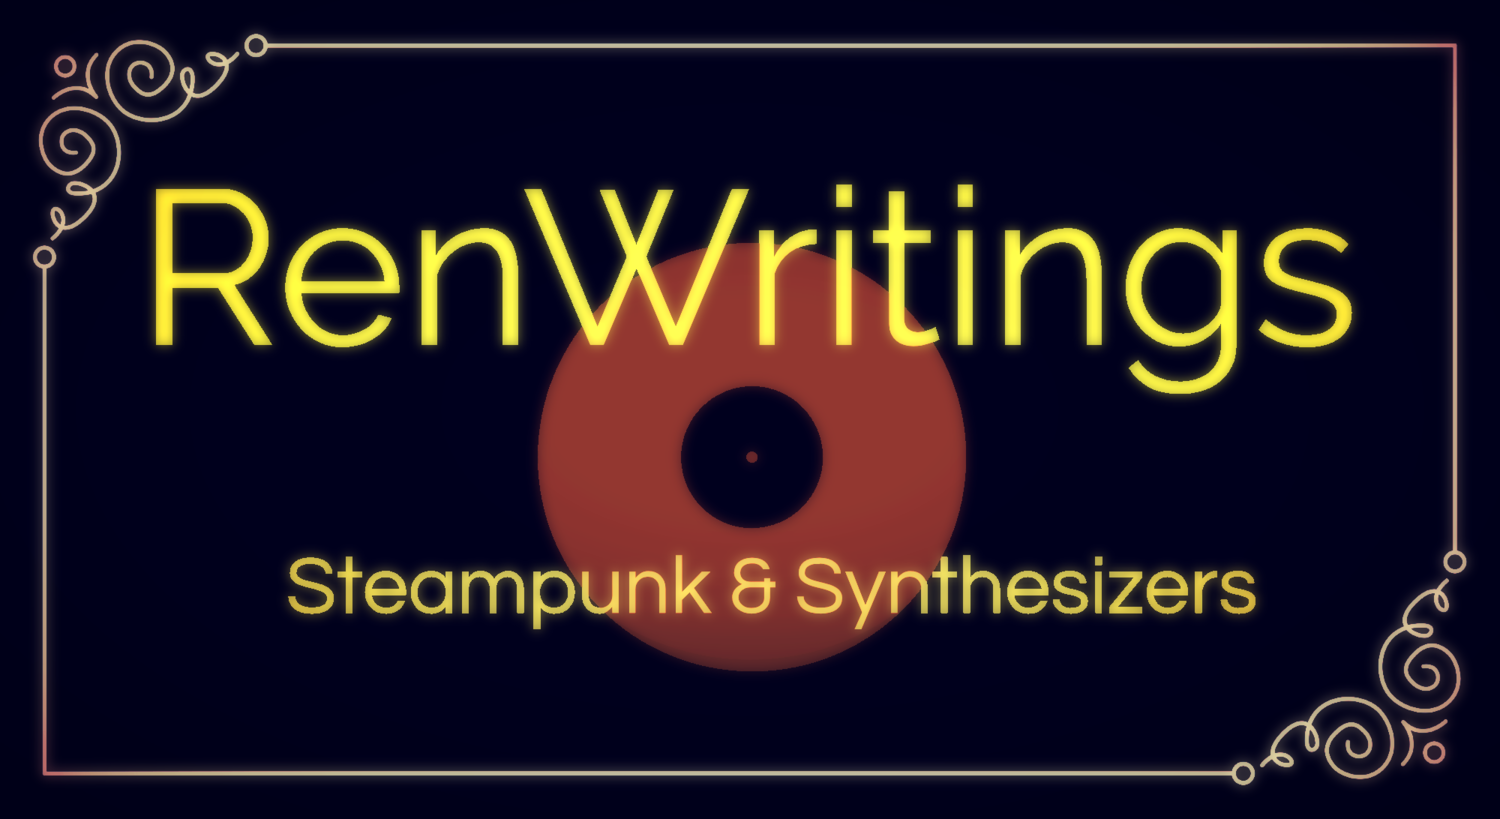 Steampunk & Synthesizers